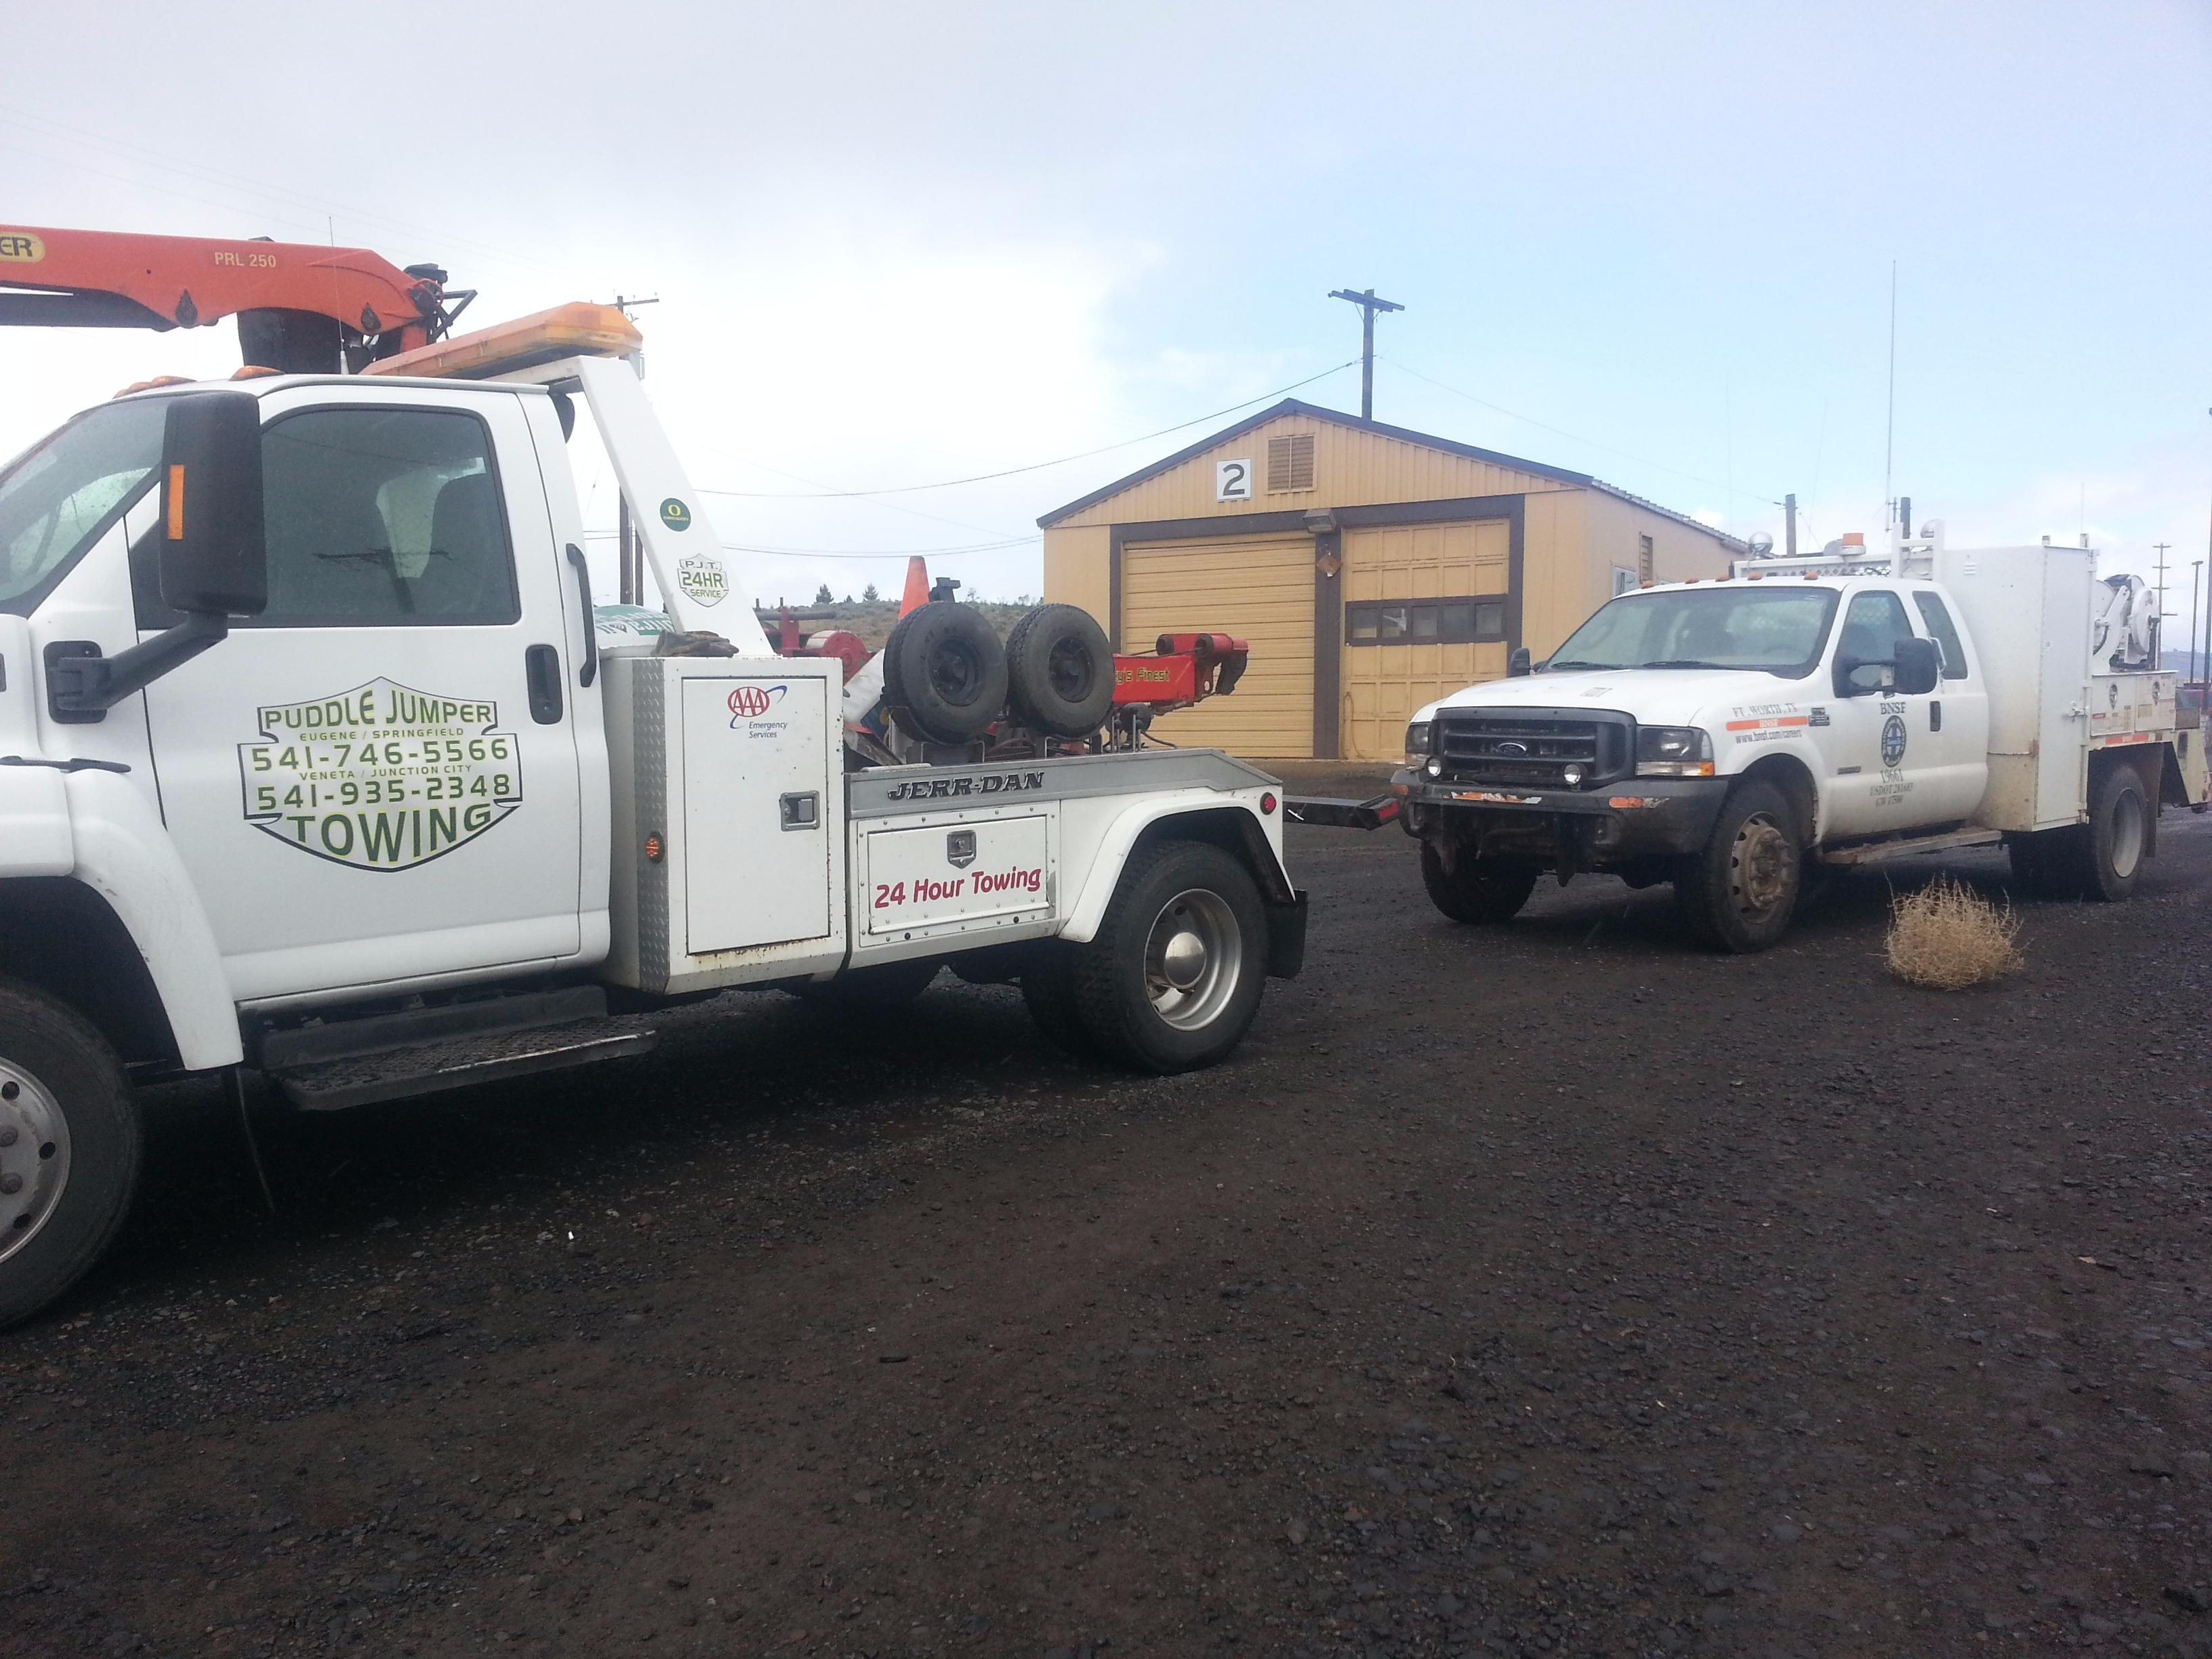 Puddle Jumper Towing Recovery Amp Auto Transport Llc